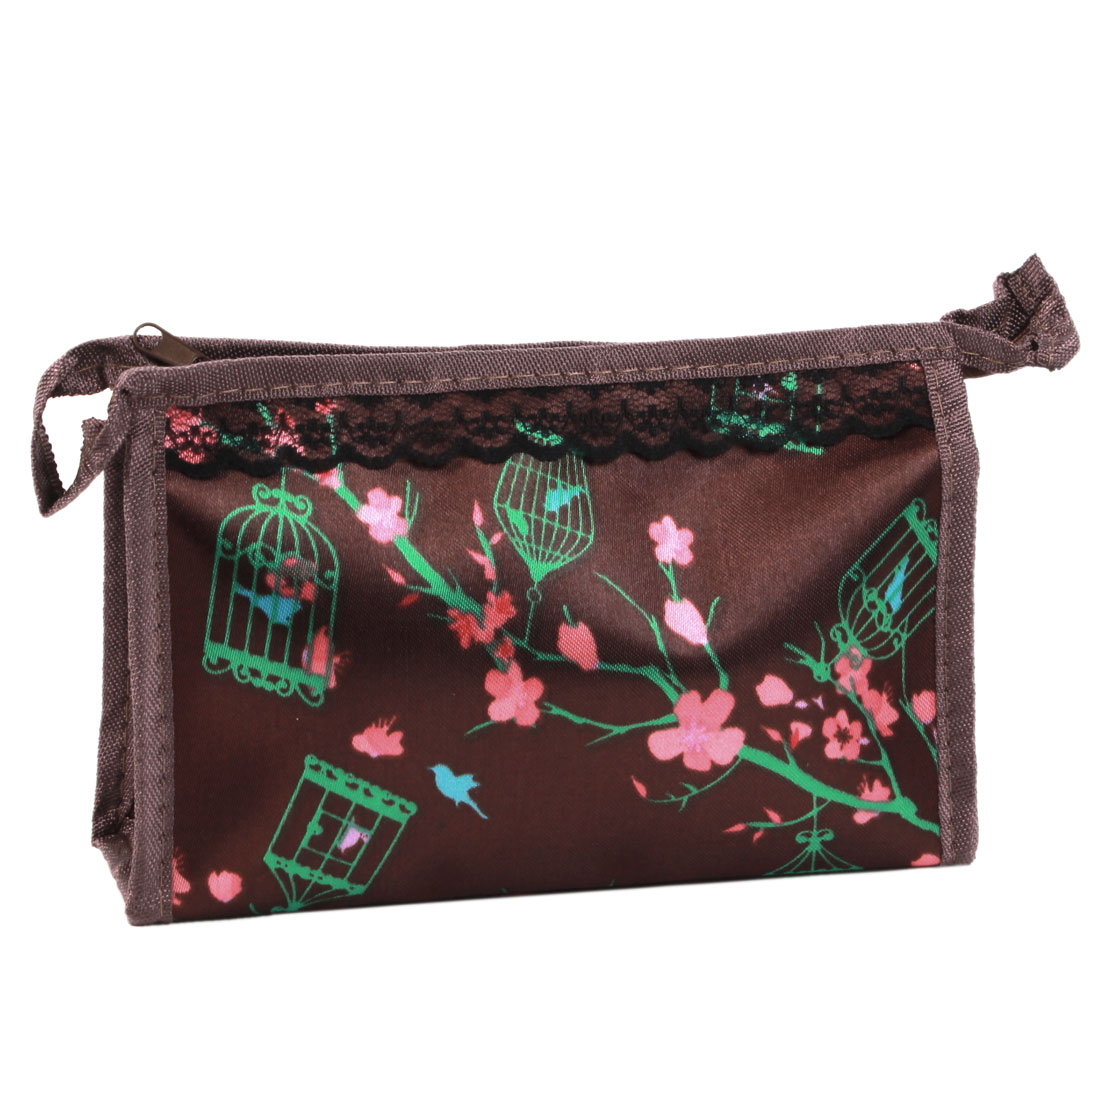 Lady Wintersweet Print Single Zipper Closure Cosmetic Bag Pouch Chocolate Color